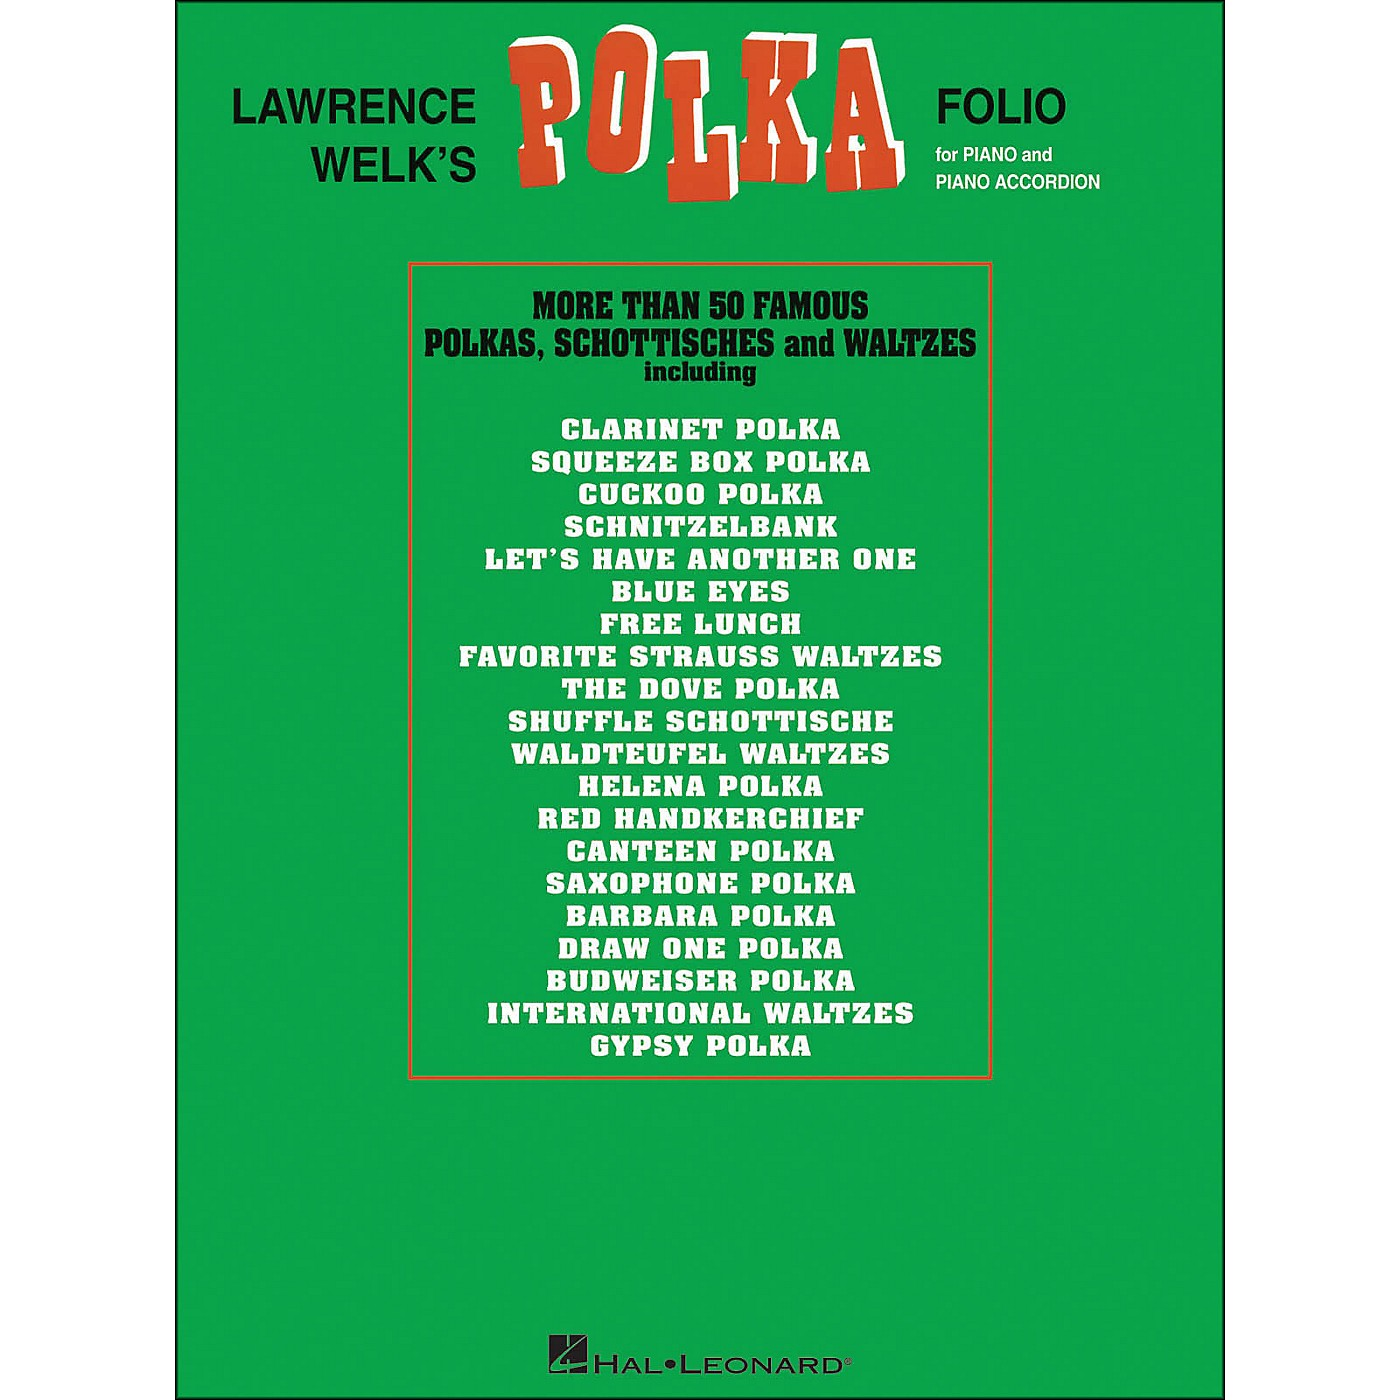 Hal Leonard Lawrence Welk's Polka Folio for Piano & Piano Accordion arranged for piano, vocal, and guitar (P/V/G) thumbnail